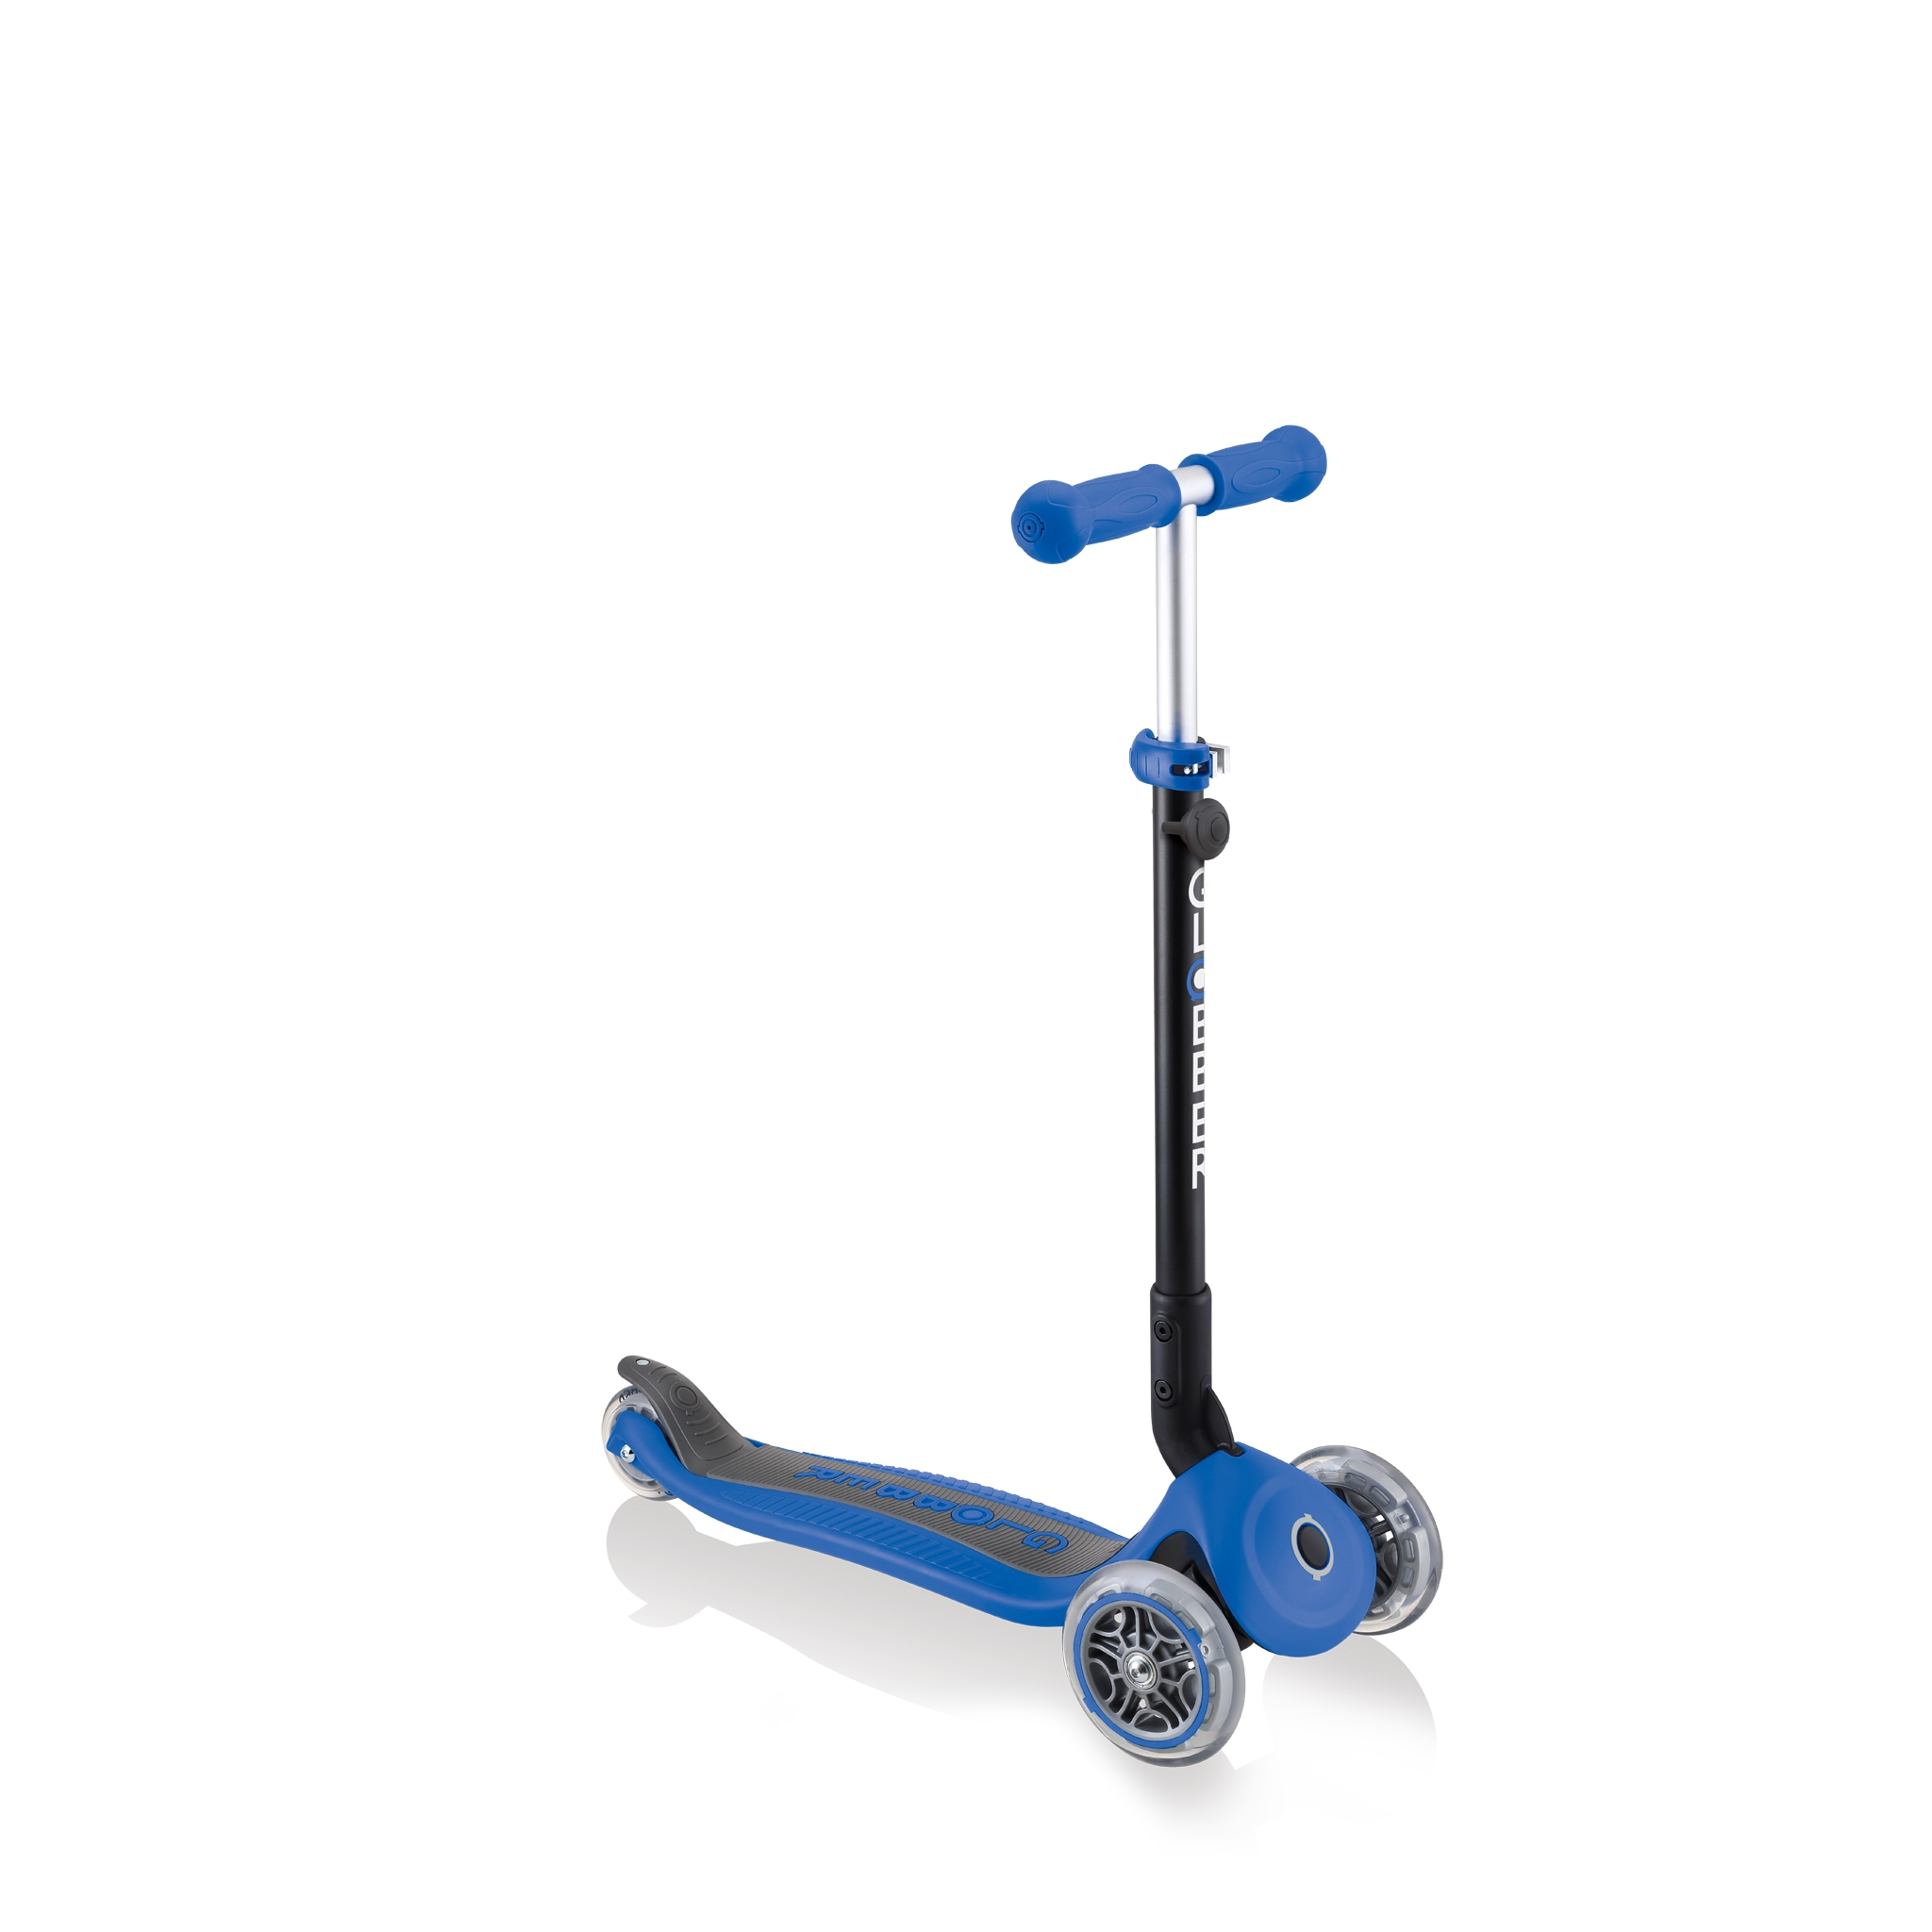 Globber-GO-UP-FOLDABLE-3-in-1-scooter-for-toddlers-scooter-mode 2